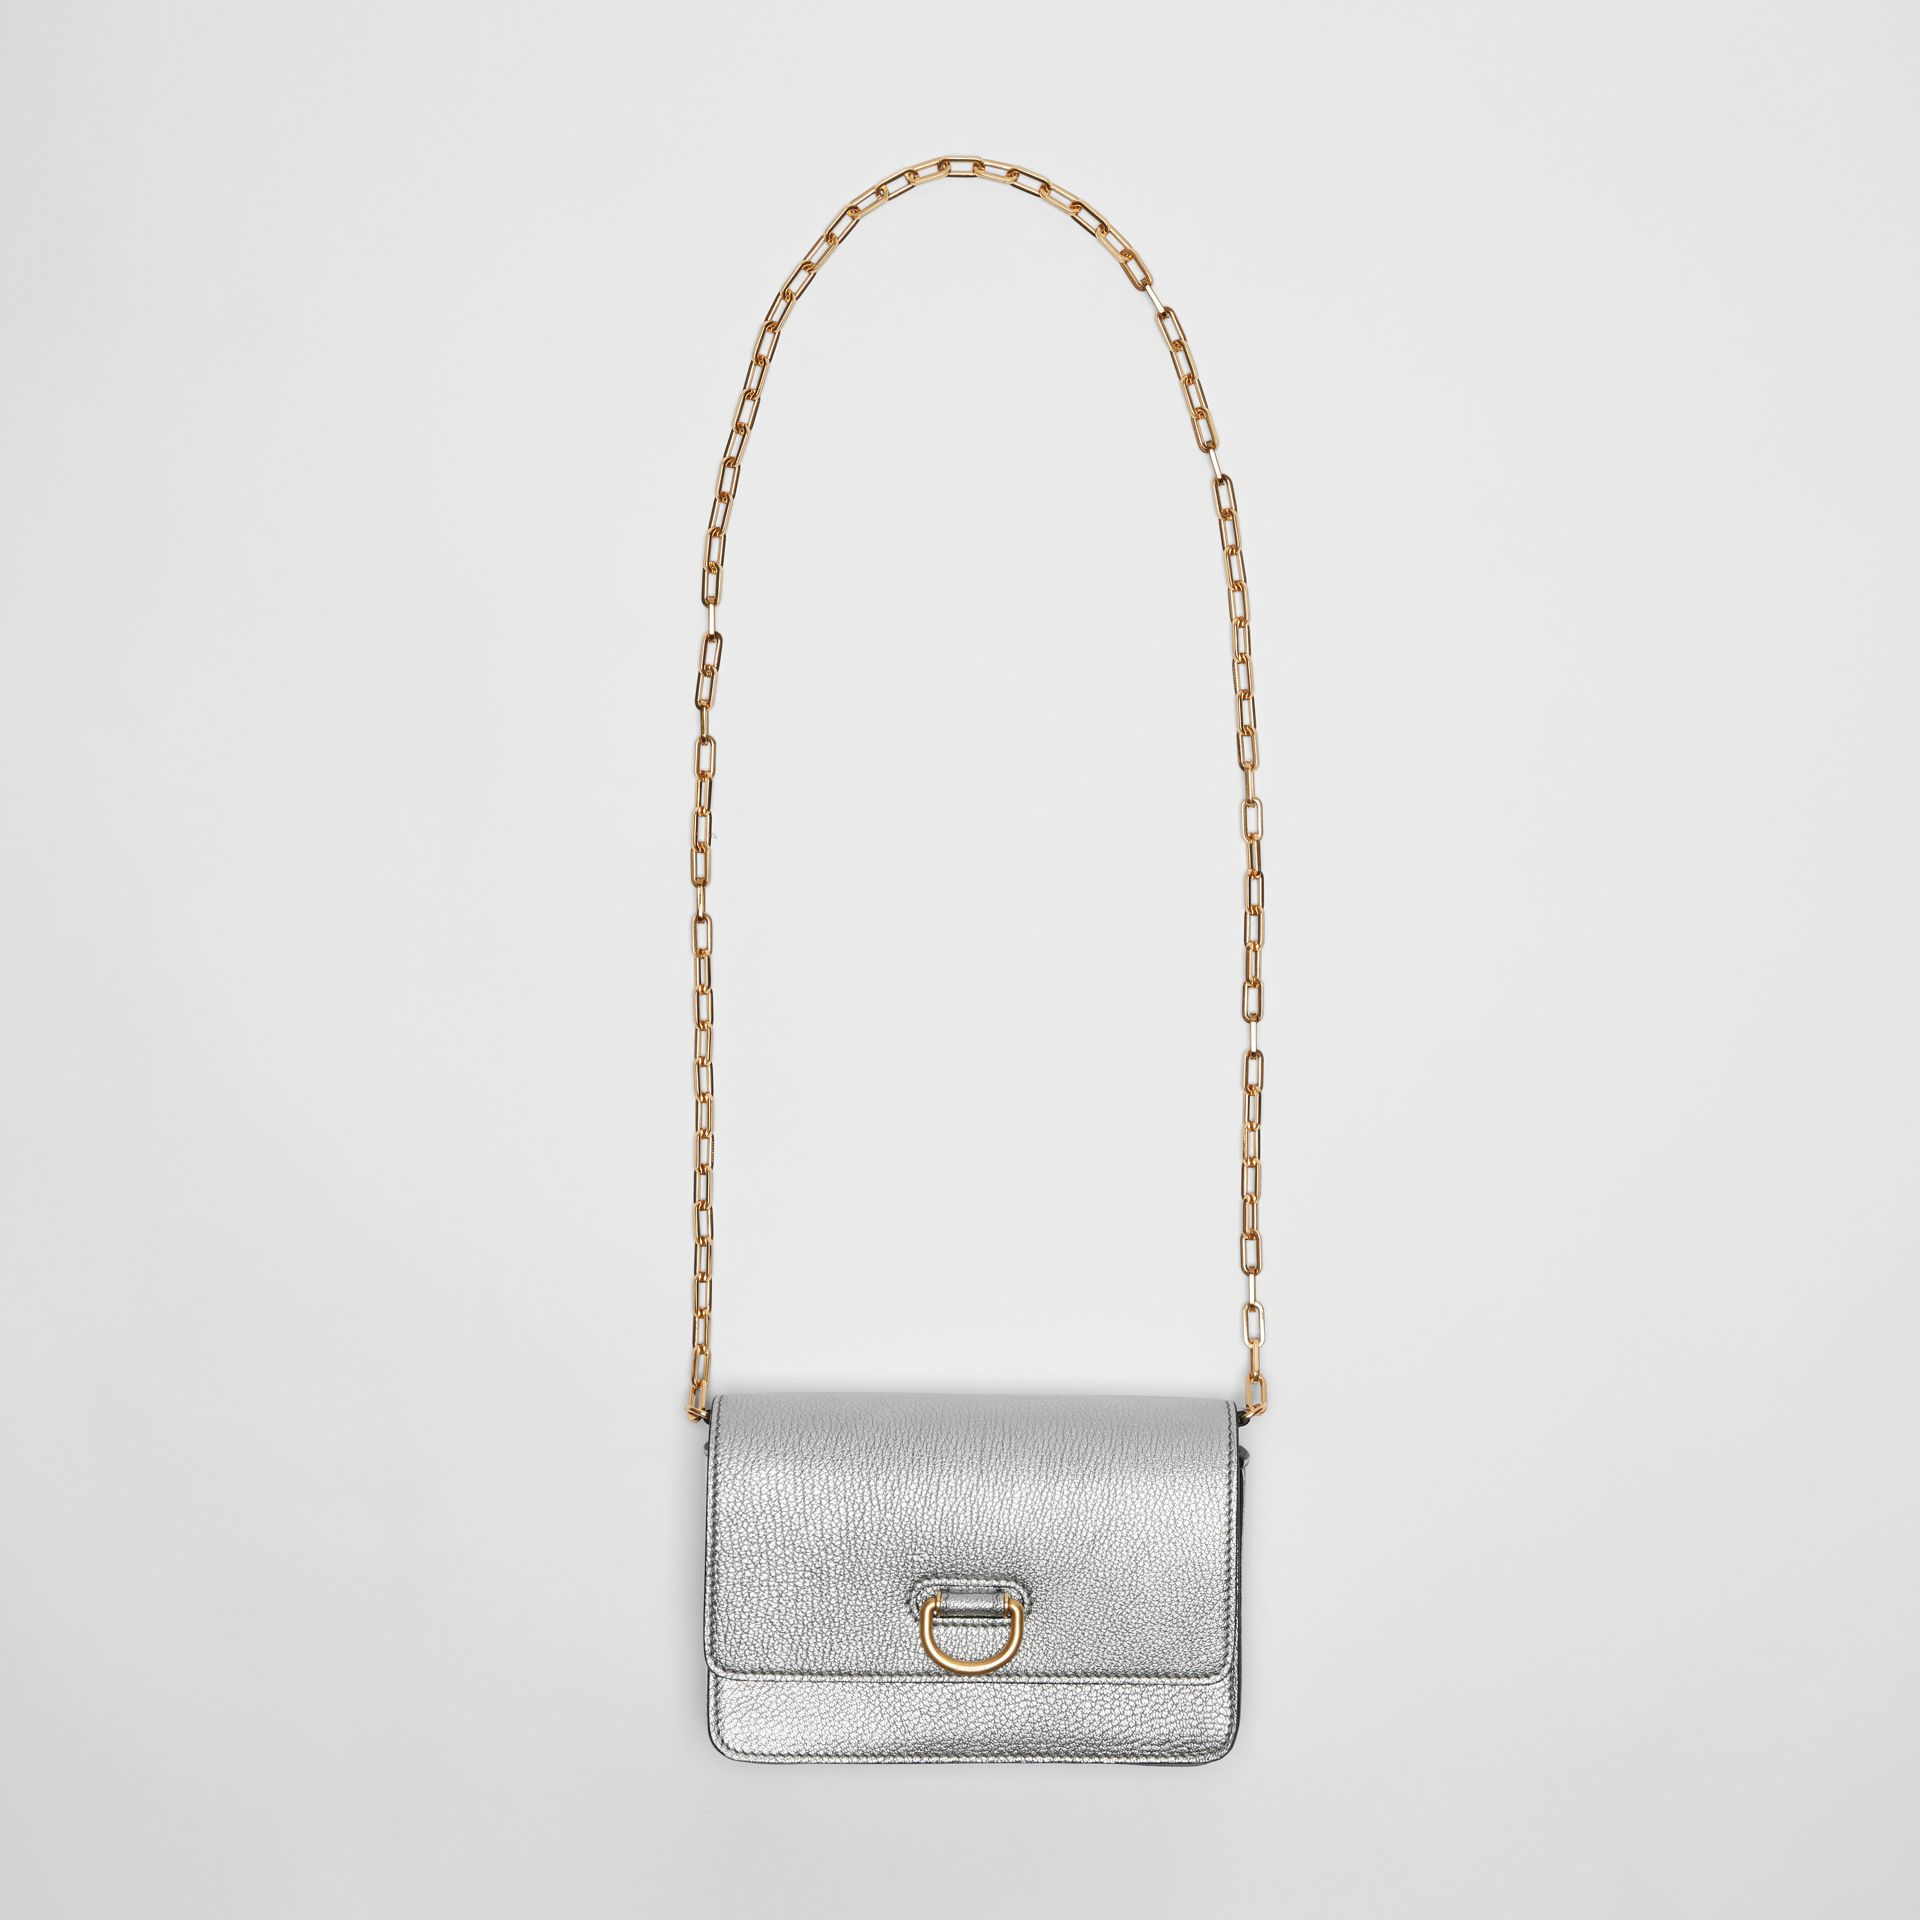 Mini sac The D-ring en cuir (Argent) - Femme | Burberry Canada - photo de la galerie 4